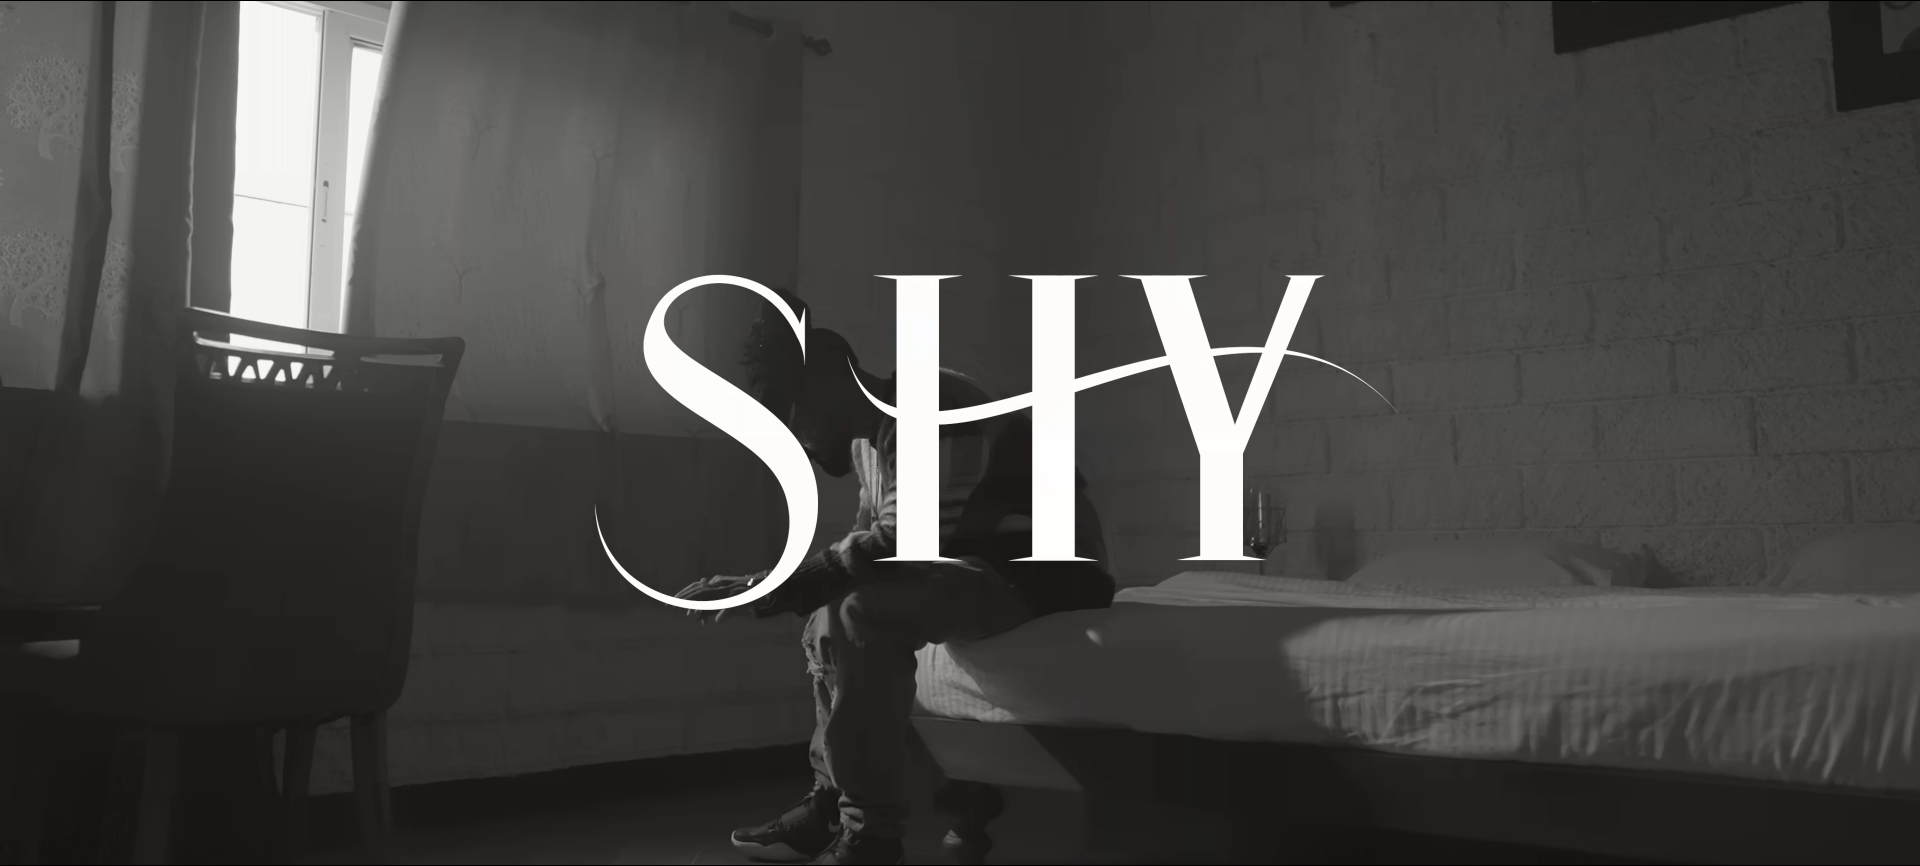 Shy Lyrics by Emiway Bantai is latest Hindi song with music given by Meme Machine. Shy song lyrics are written by Emiway Bantai and music video is directed by Shubham Dolas.